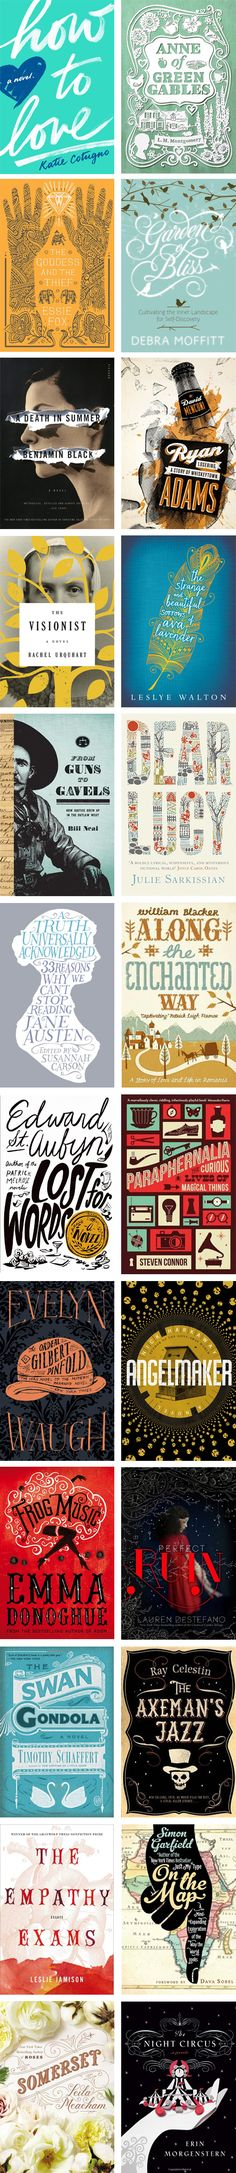 A plethora of book cover designs